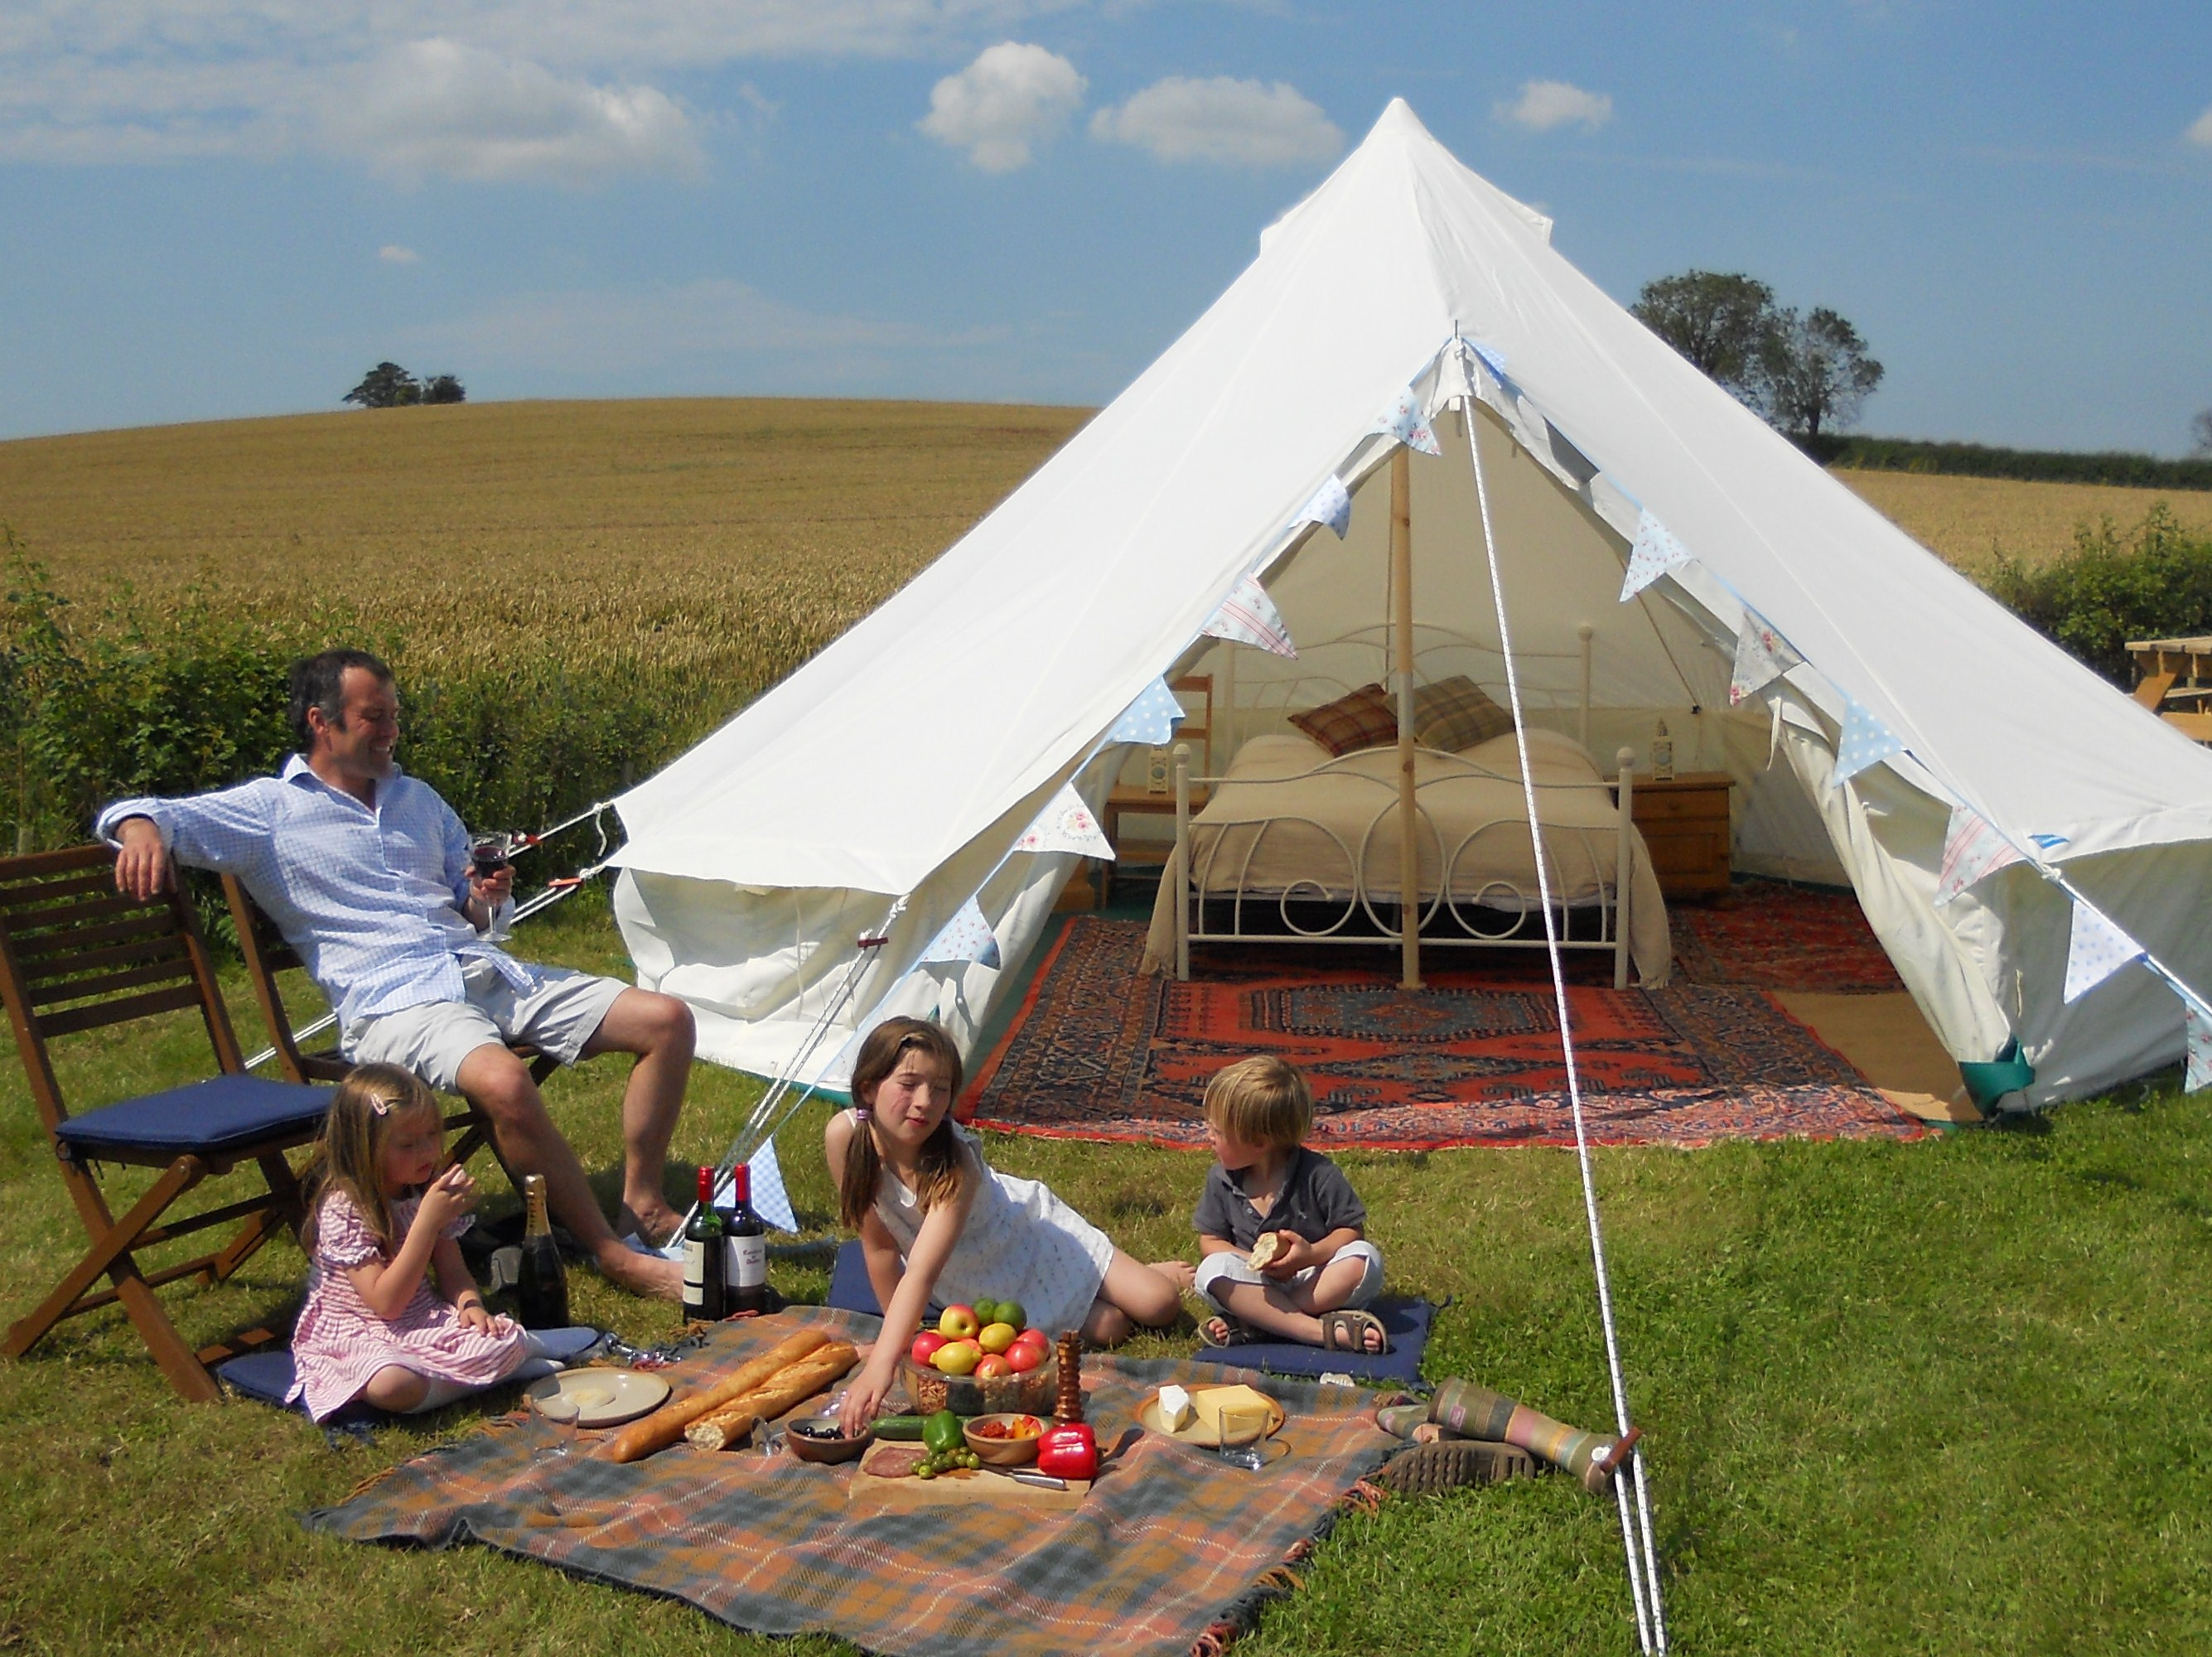 Planning permission for glamping